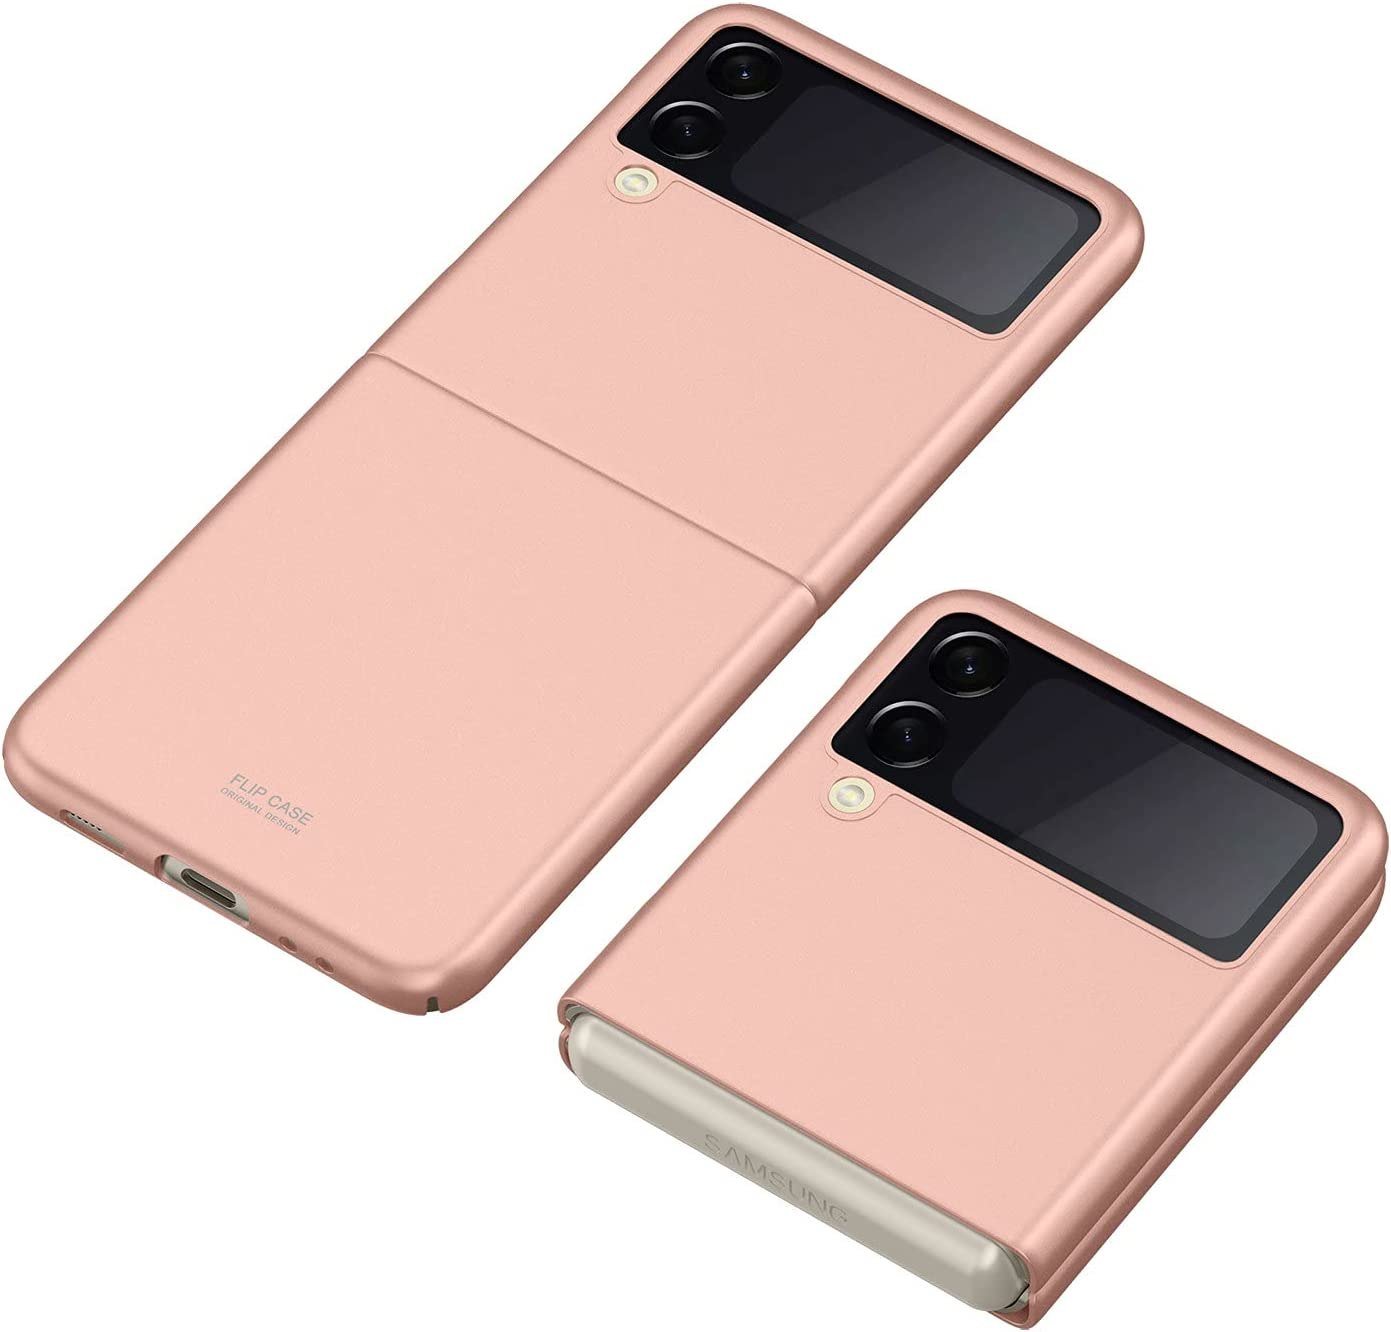 DAMONDY for Samsung Z Flip 3 5G Case, Galaxy Z Flip 3 Case,Ultra Thin Hard Plastic Full Protective Cover with Matte Finish Compatible with Samsung Galaxy Z Flip 3 5G 2021 -Rose Gold